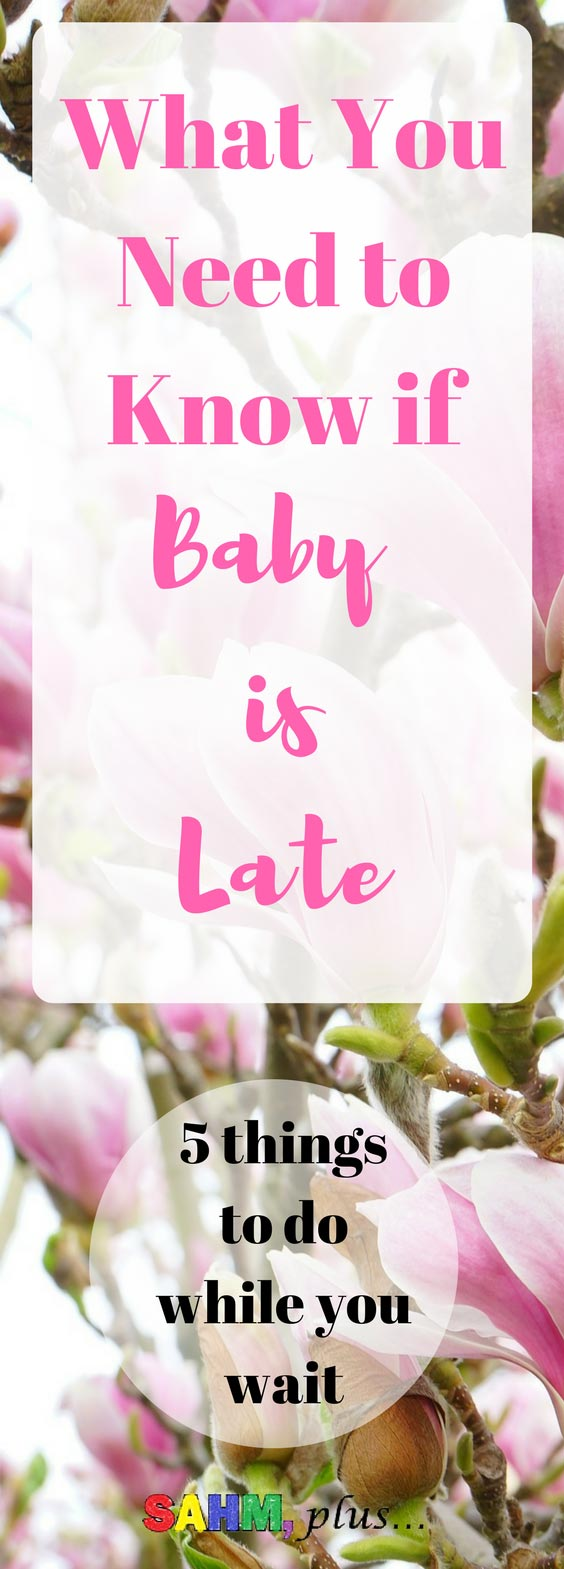 4 things you need to know if baby is late and 5 ways to cope with your overdue pregnancy